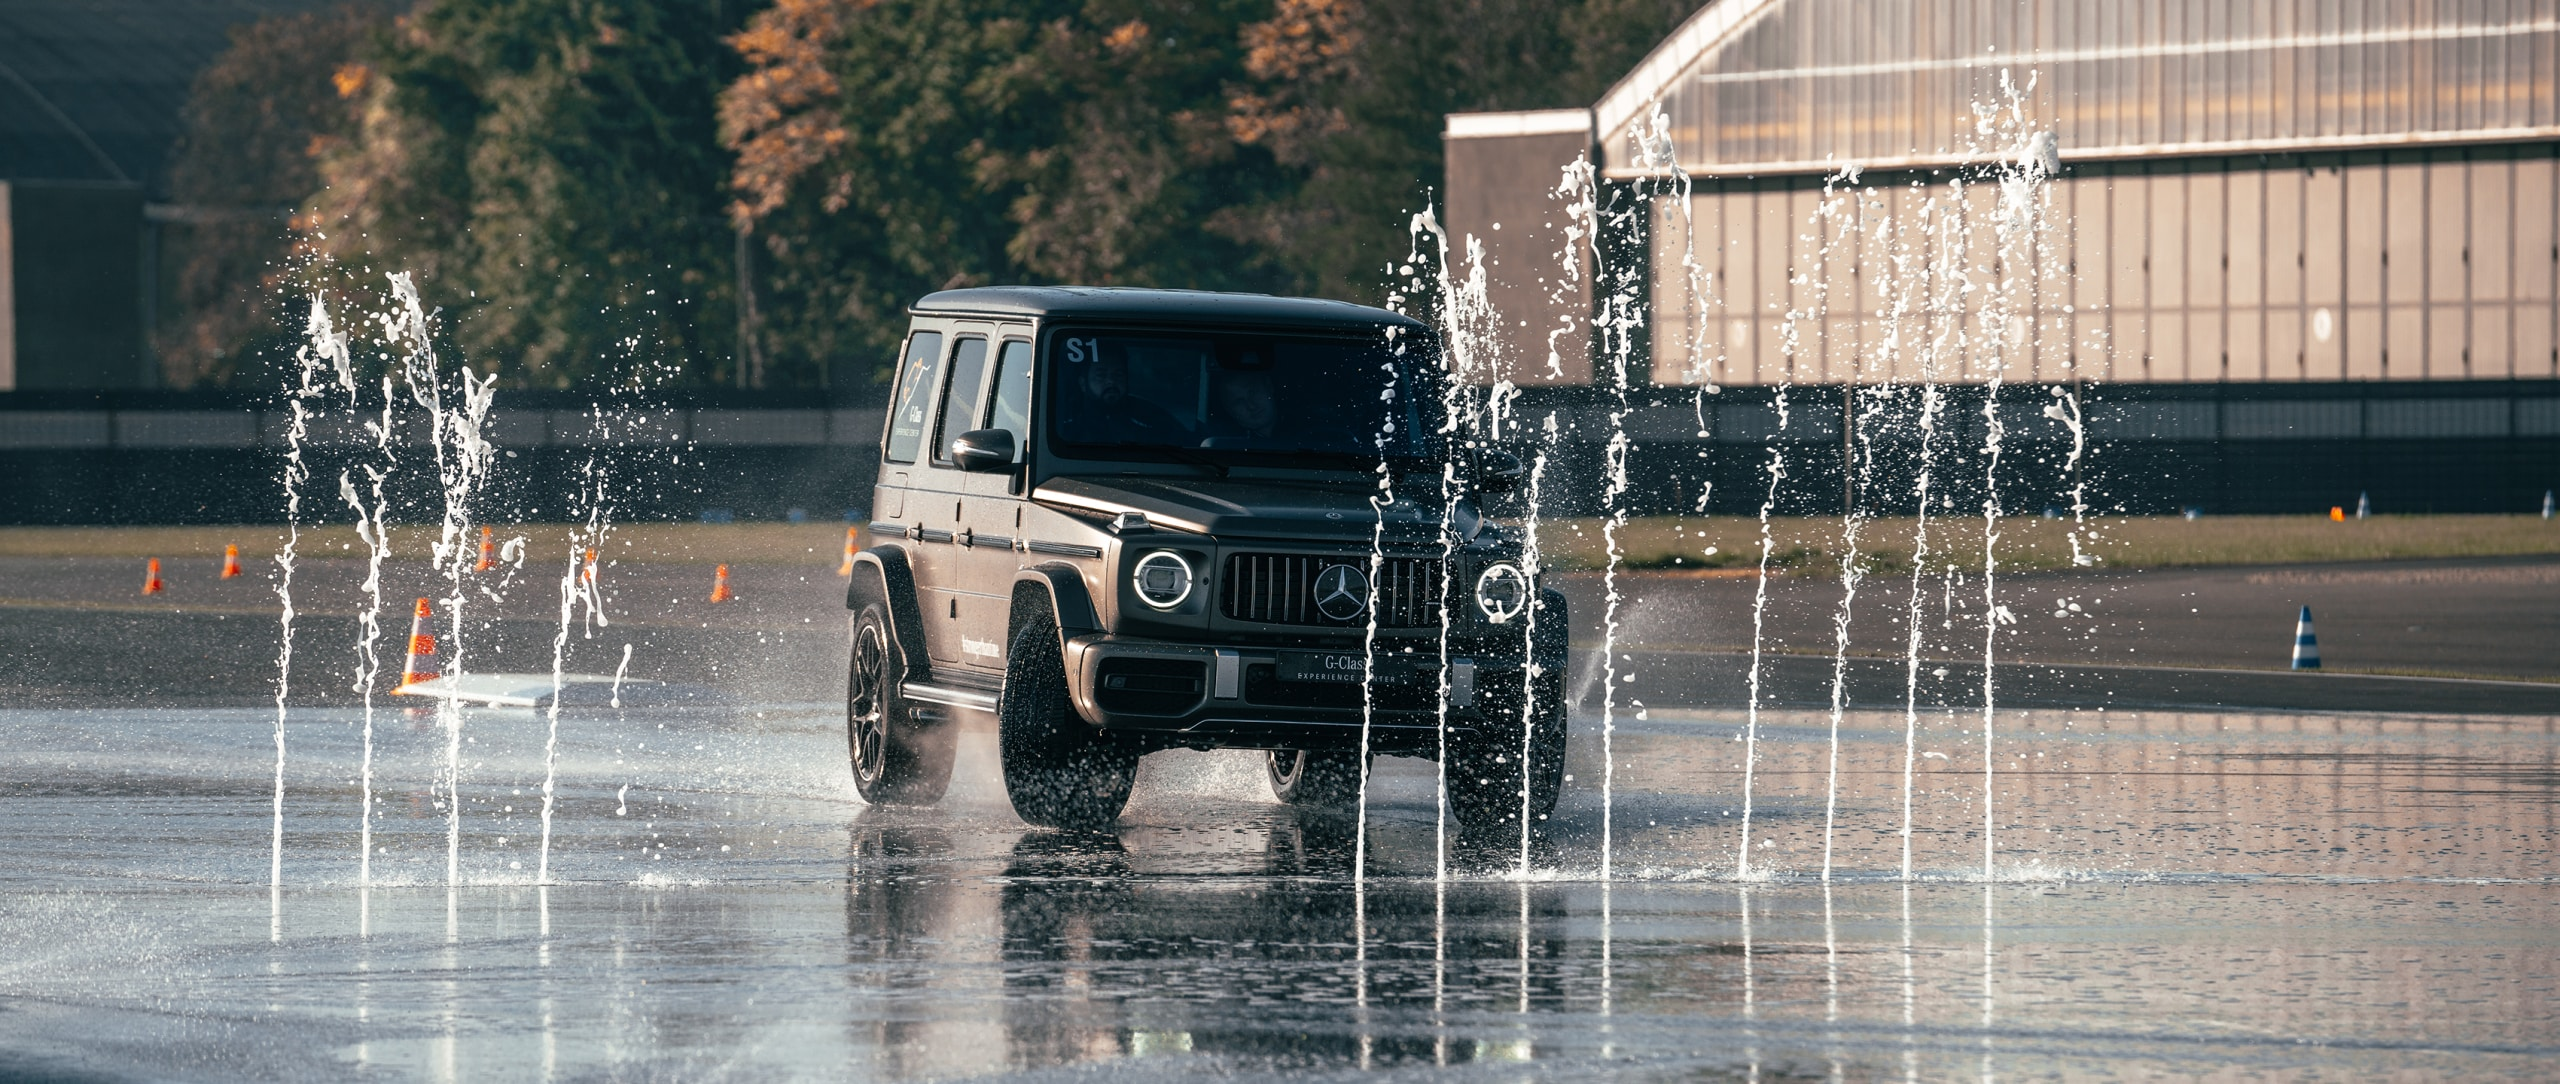 The Mercedes-Benz G-Class driving on wet track.